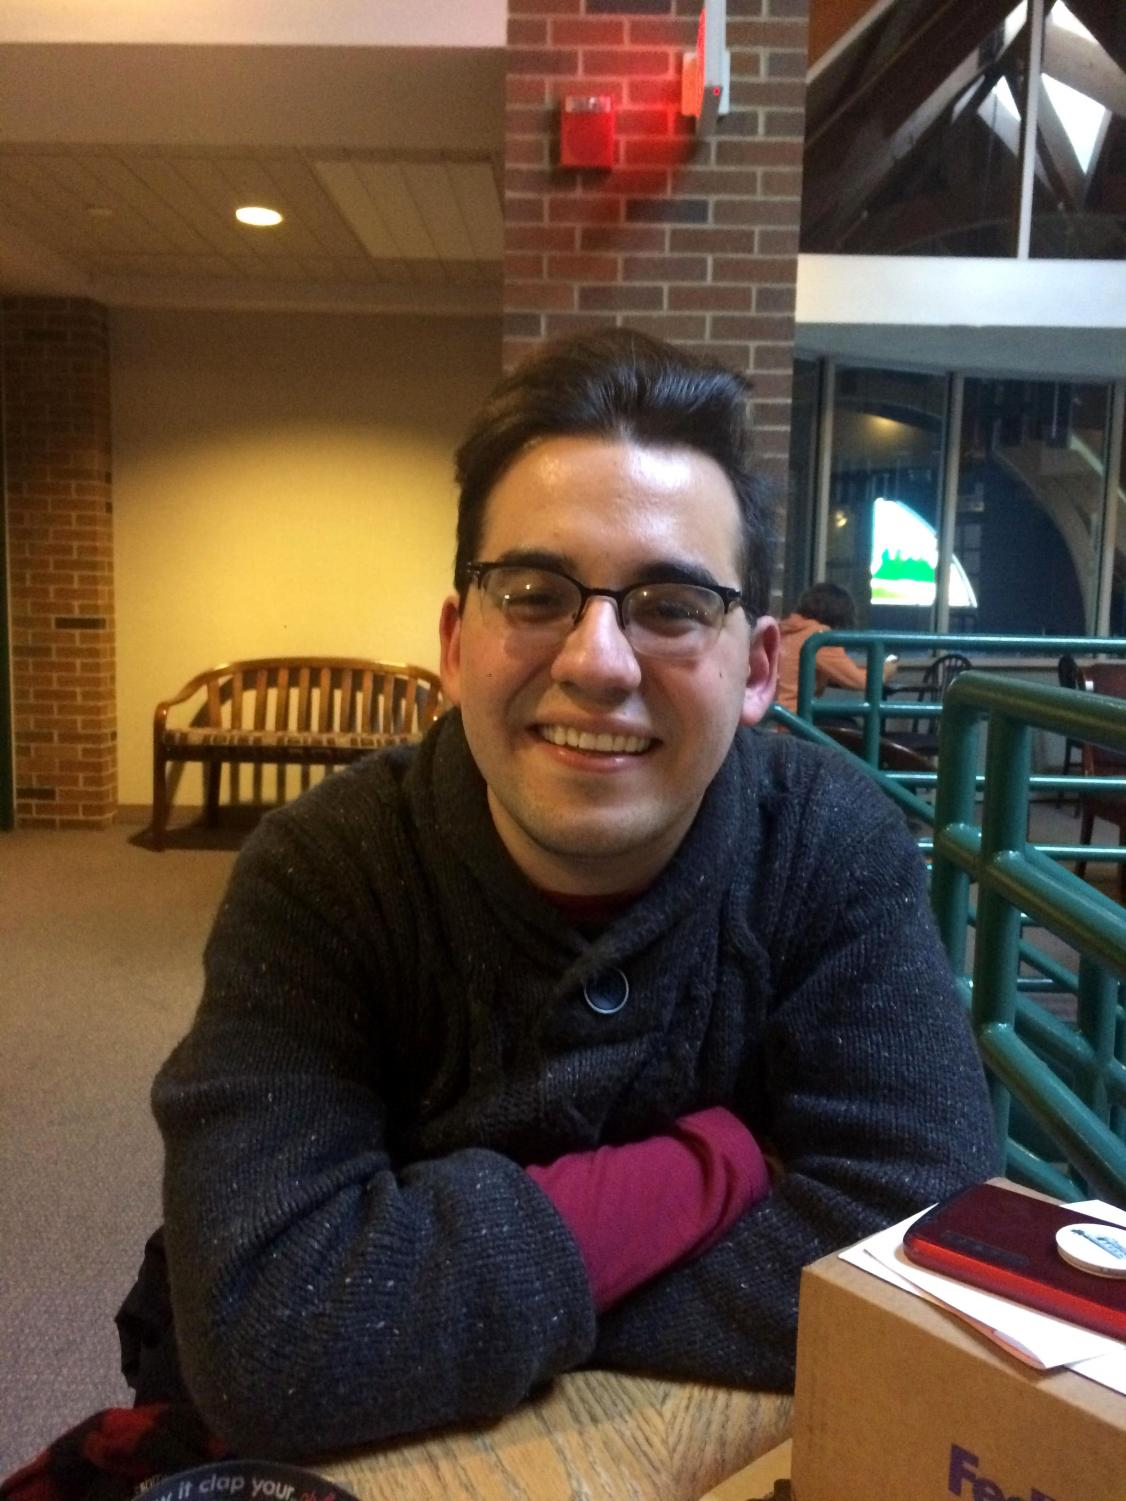 Cole Lowe is excited to travel to Argentina next March as a Fulbright Scholar, where he will improve his Spanish and to bring his teaching skills to those learning English at a college level.